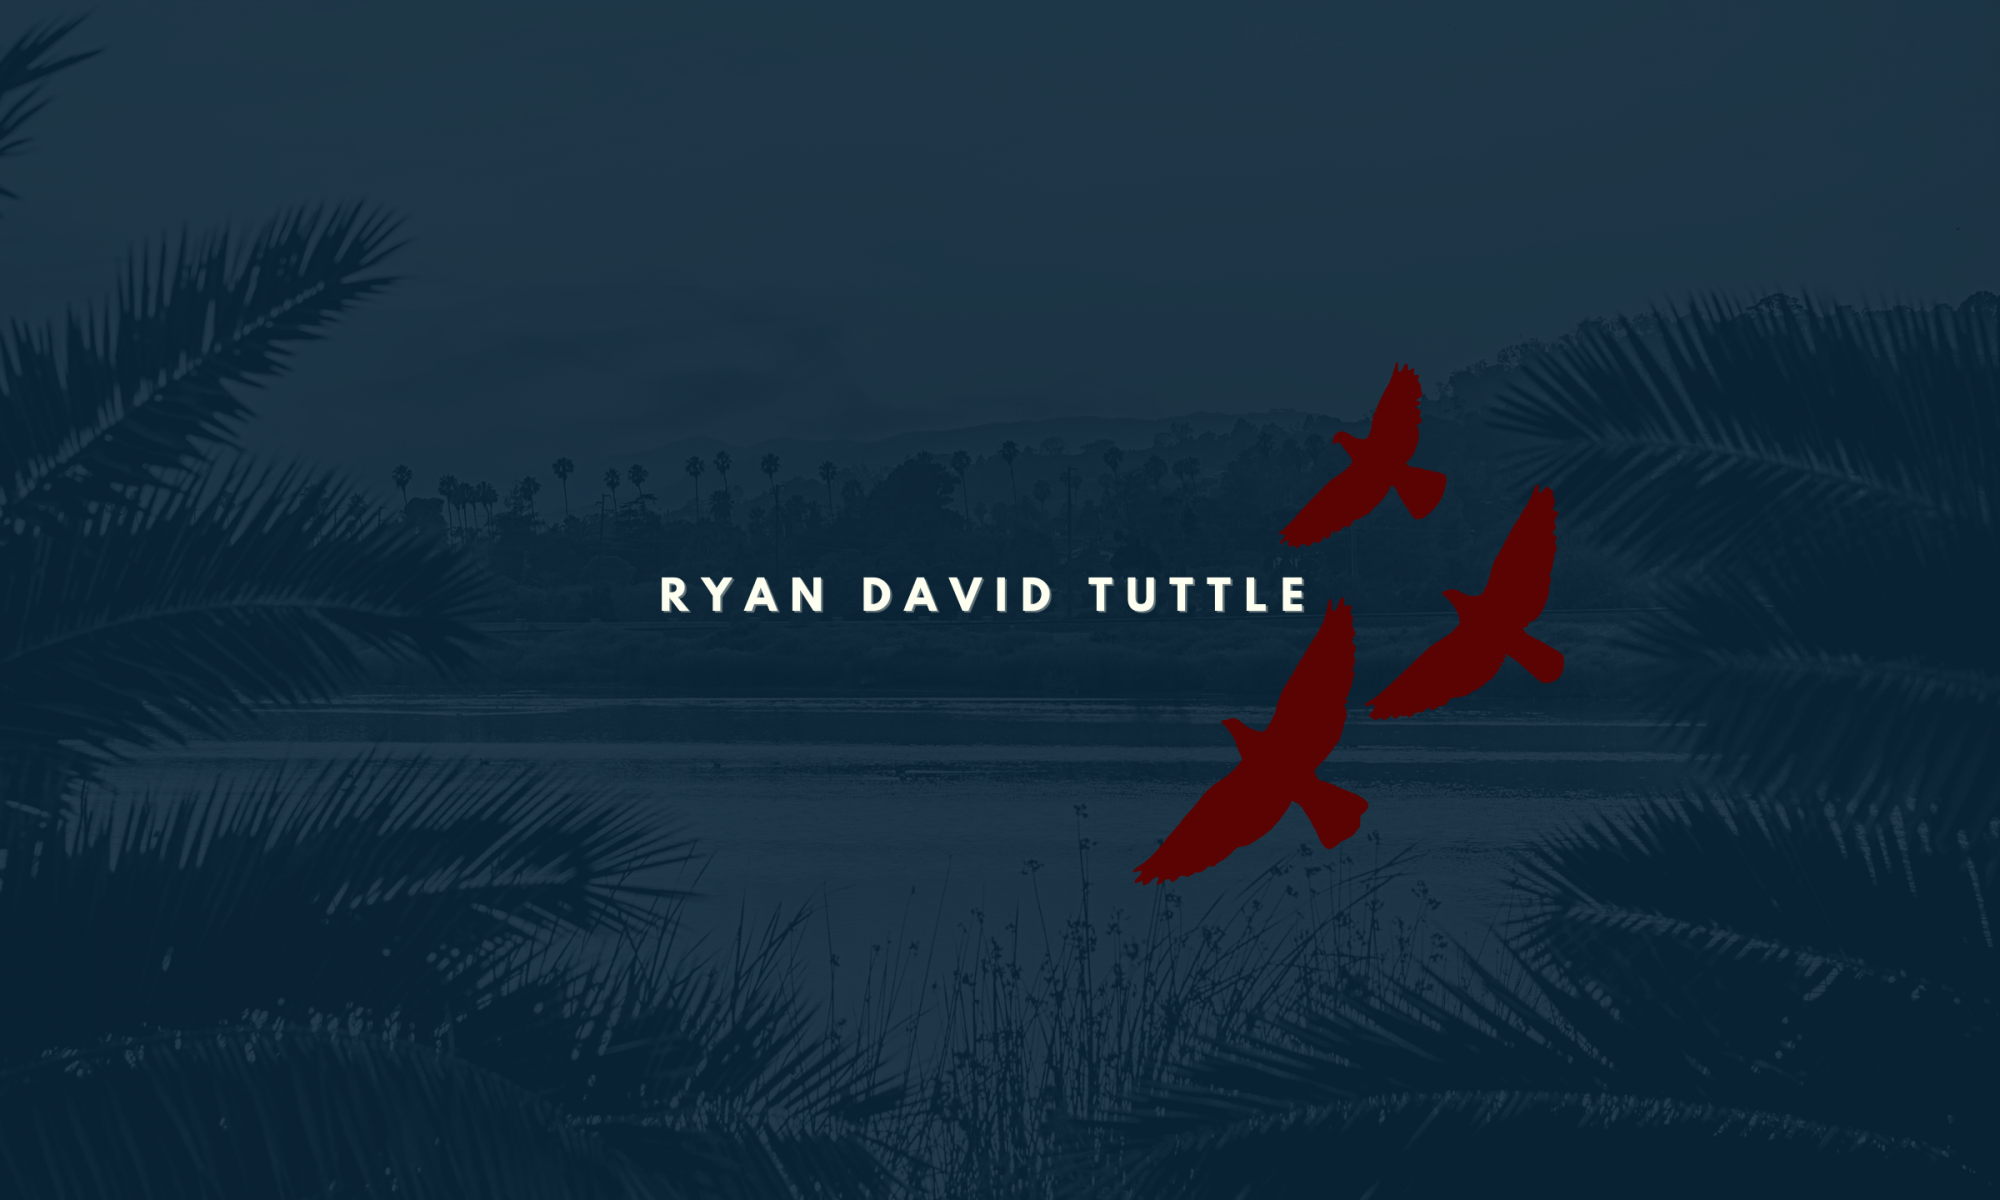 Ryan David Tuttle